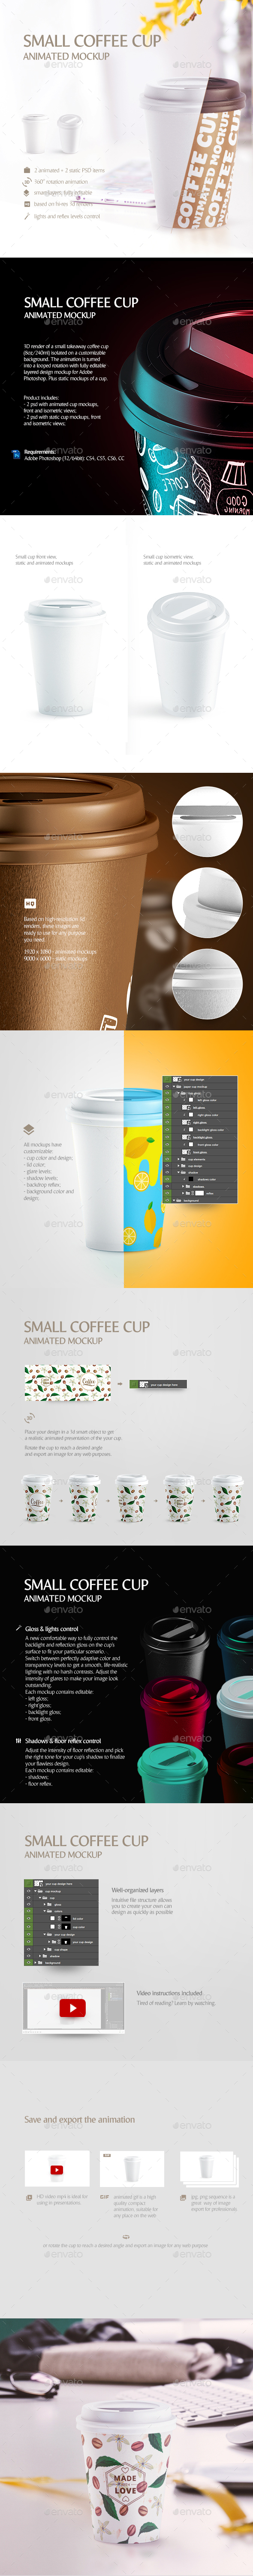 Small Coffee Cup Animated Mockup - Food and Drink Packaging